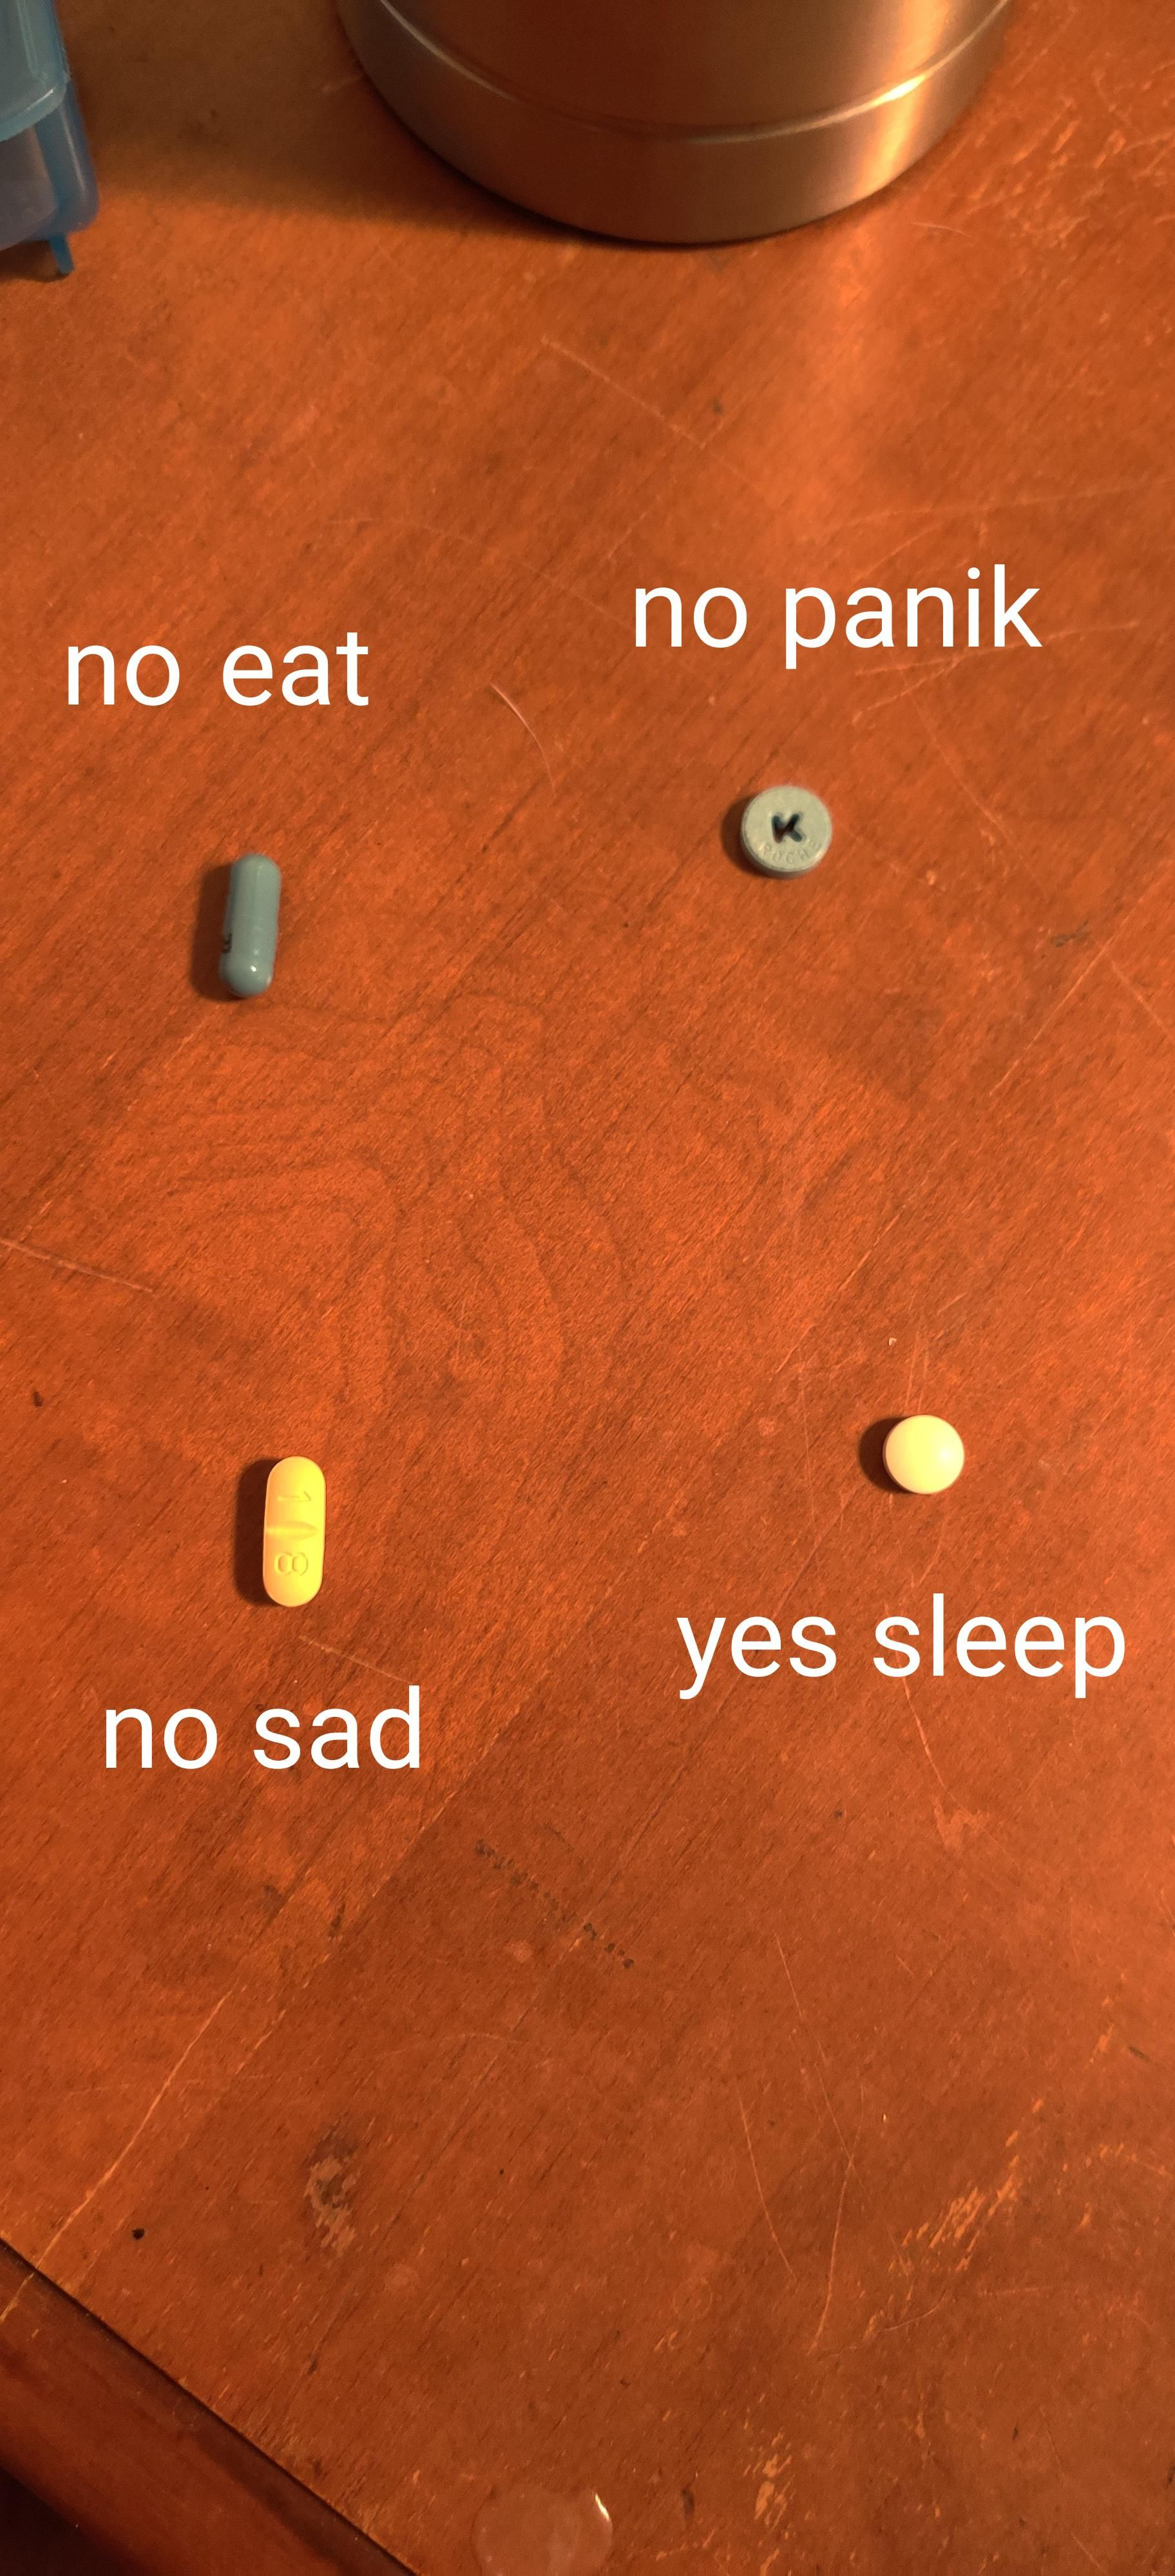 My brother was asking about my meds so I sent him this